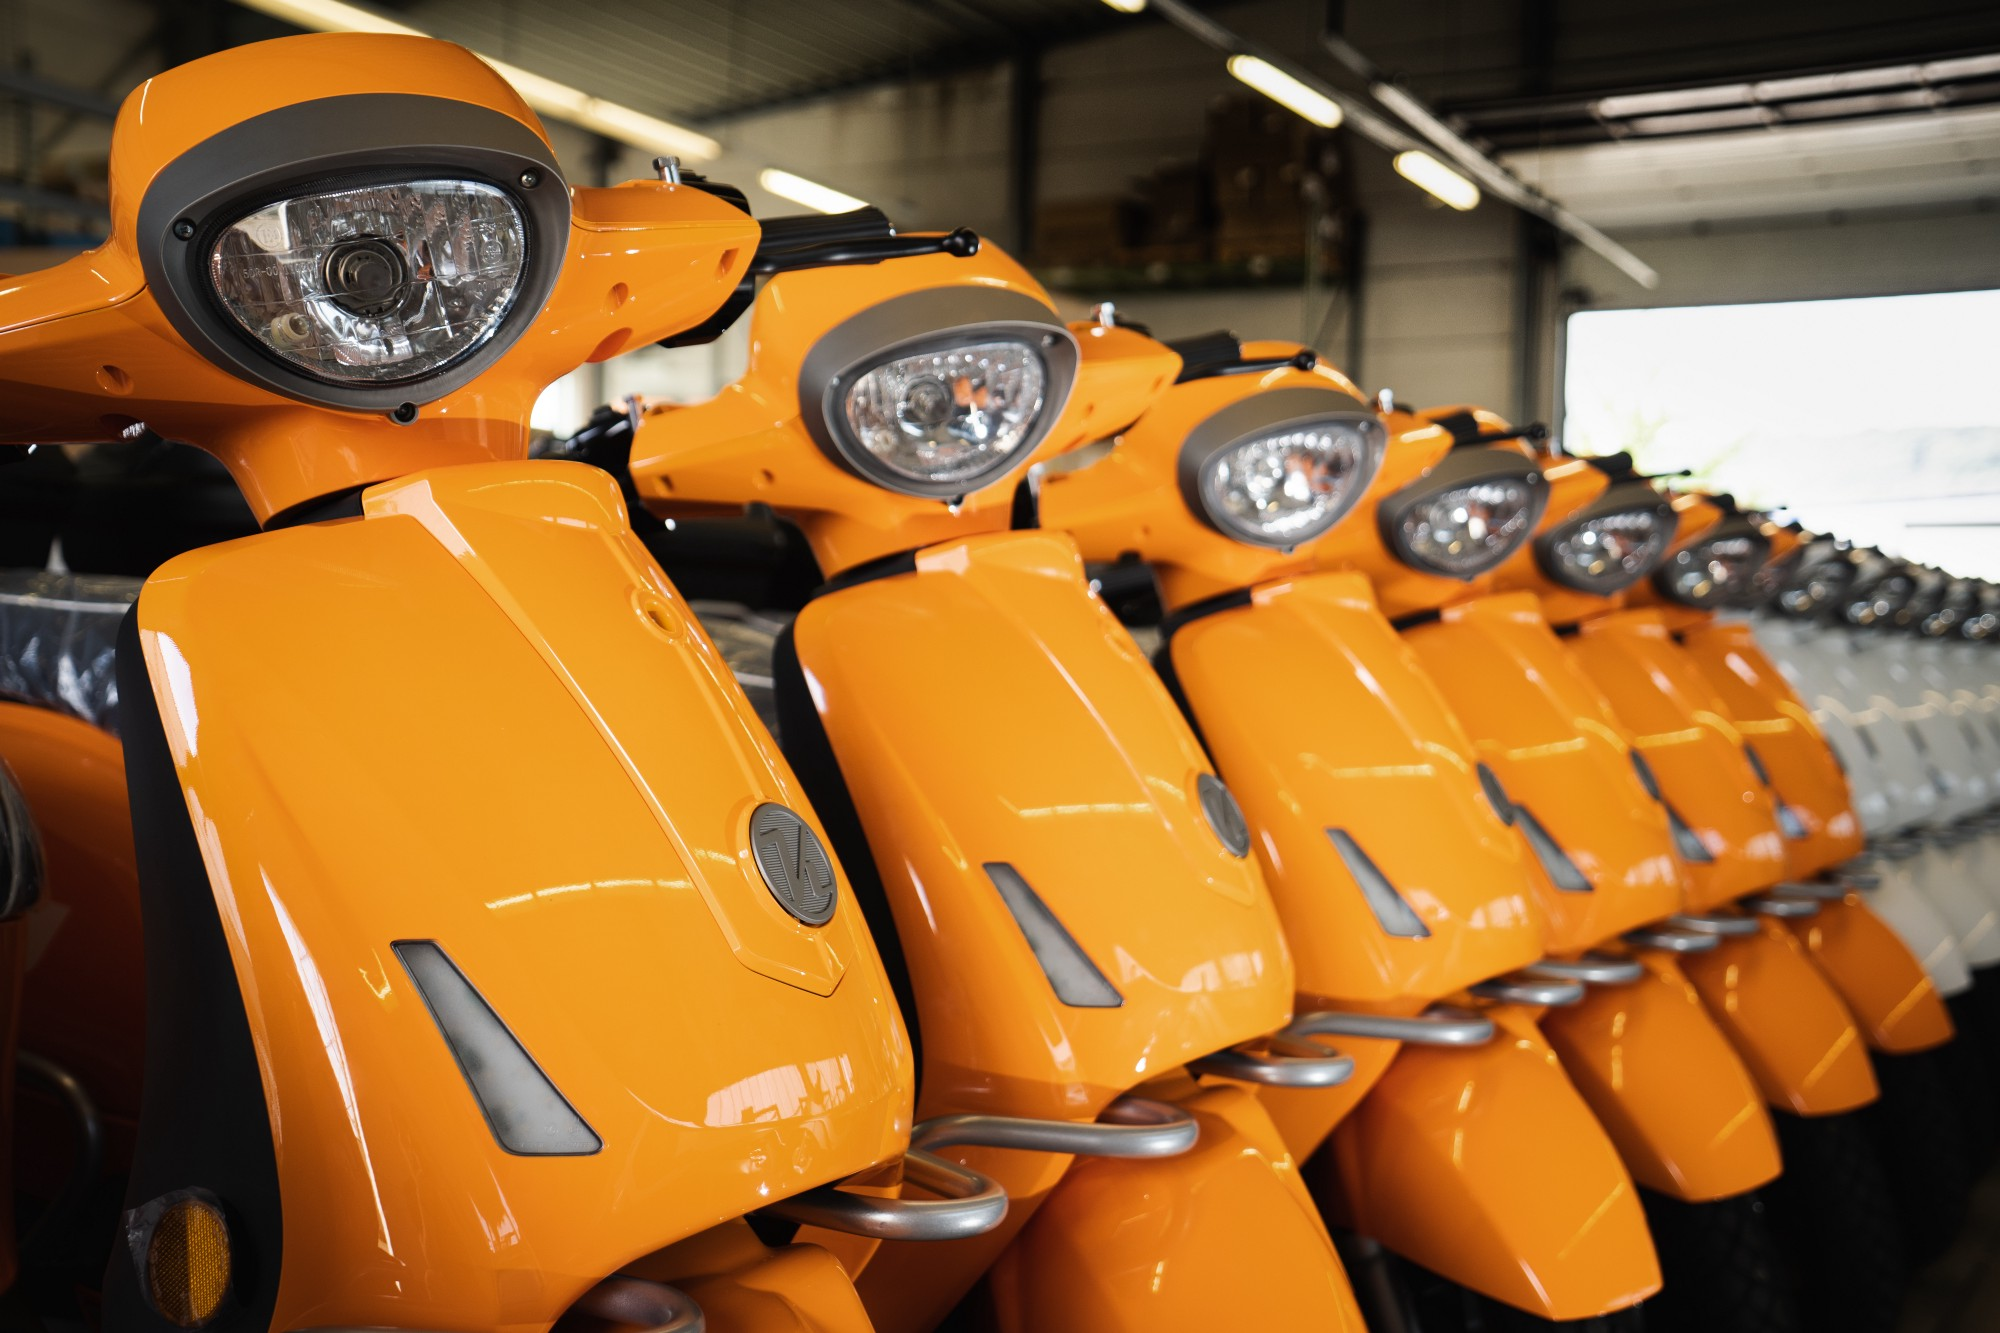 Several electric scooters in line as they go out of the production line.